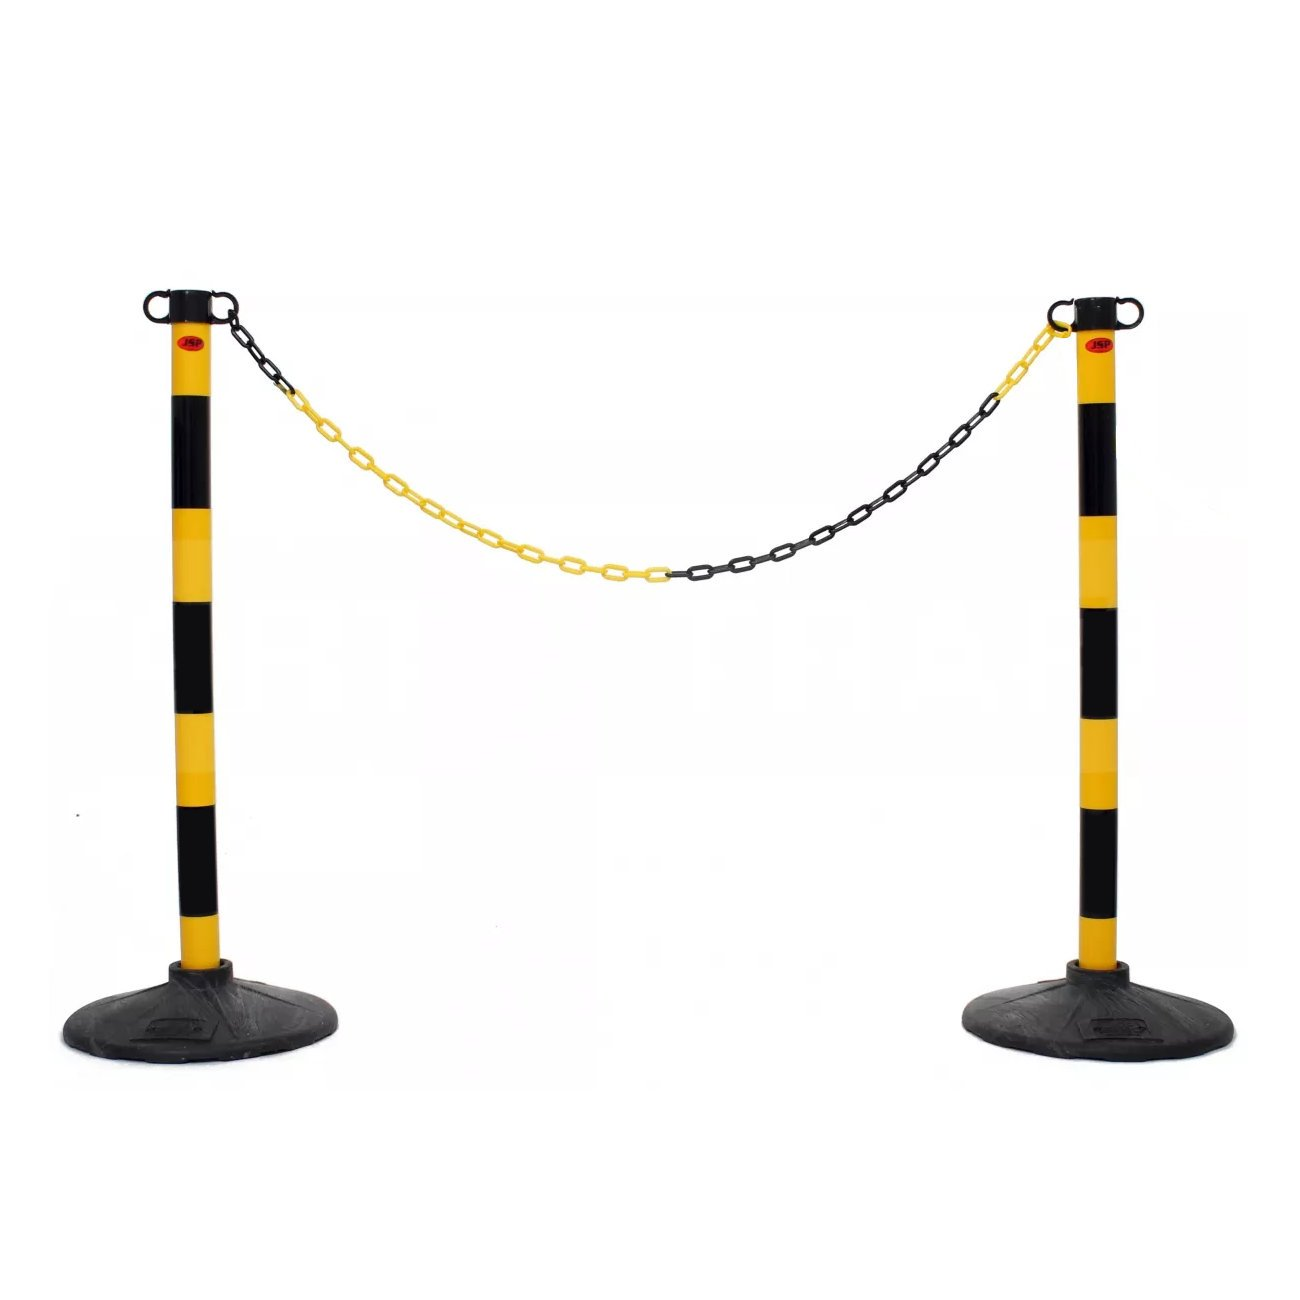 JSP Yellow & Black Post and Base Safety Security Queue Crowd Barrier System for Plastic Chain